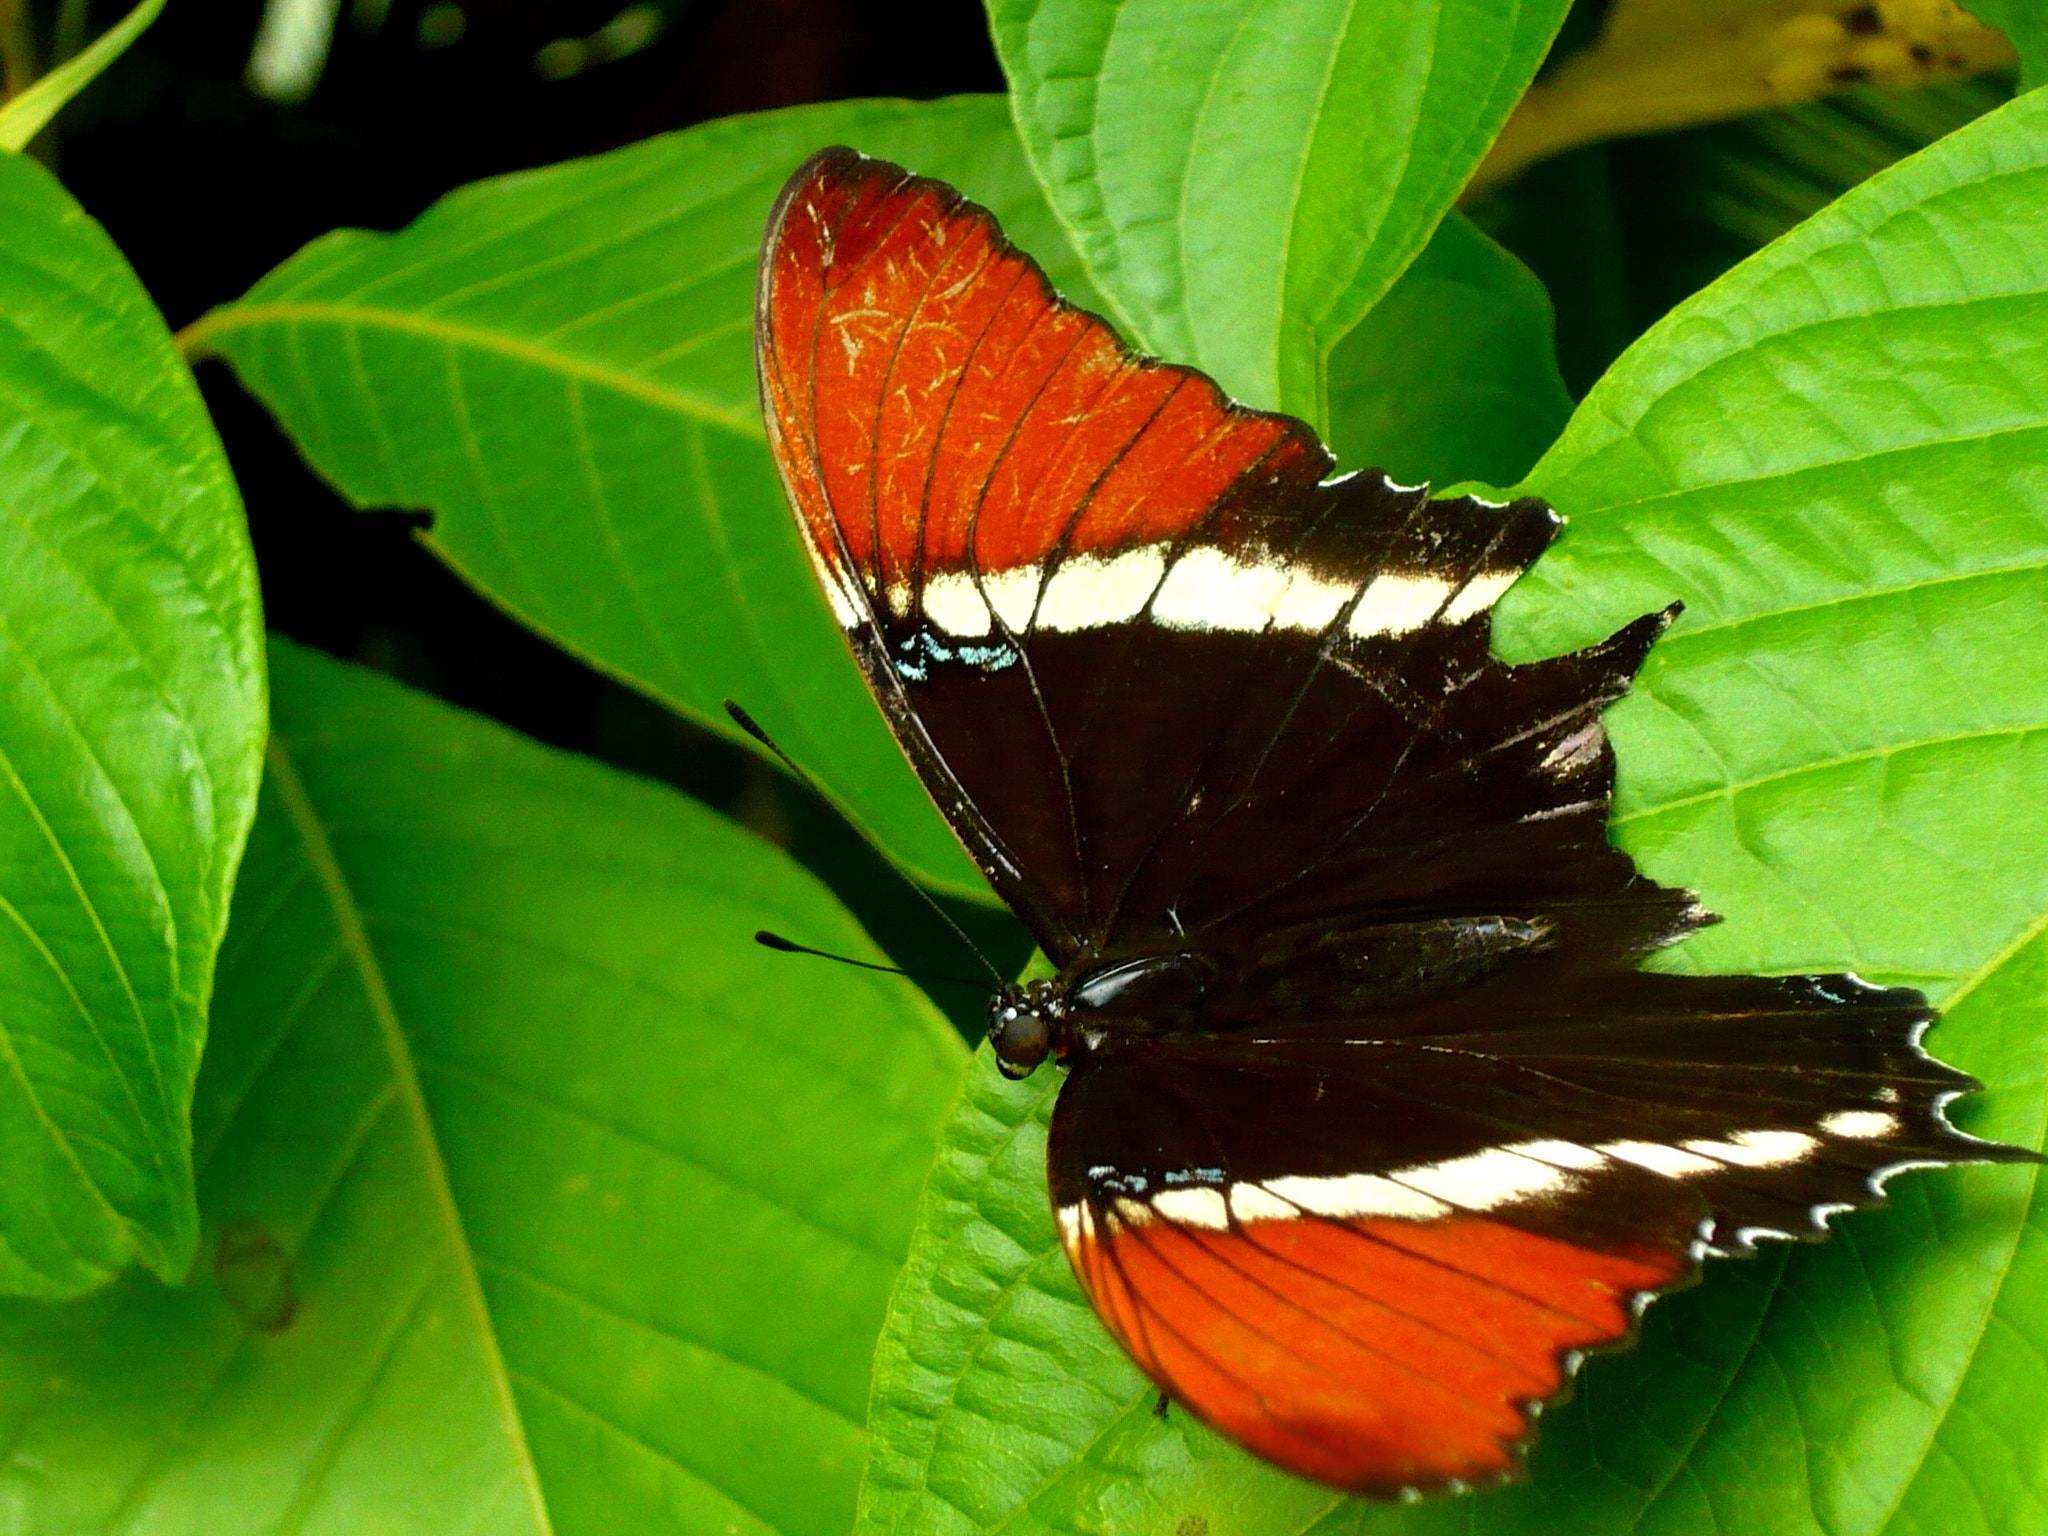 Photograph MARIPOSA by yeslith hurtado on 500px